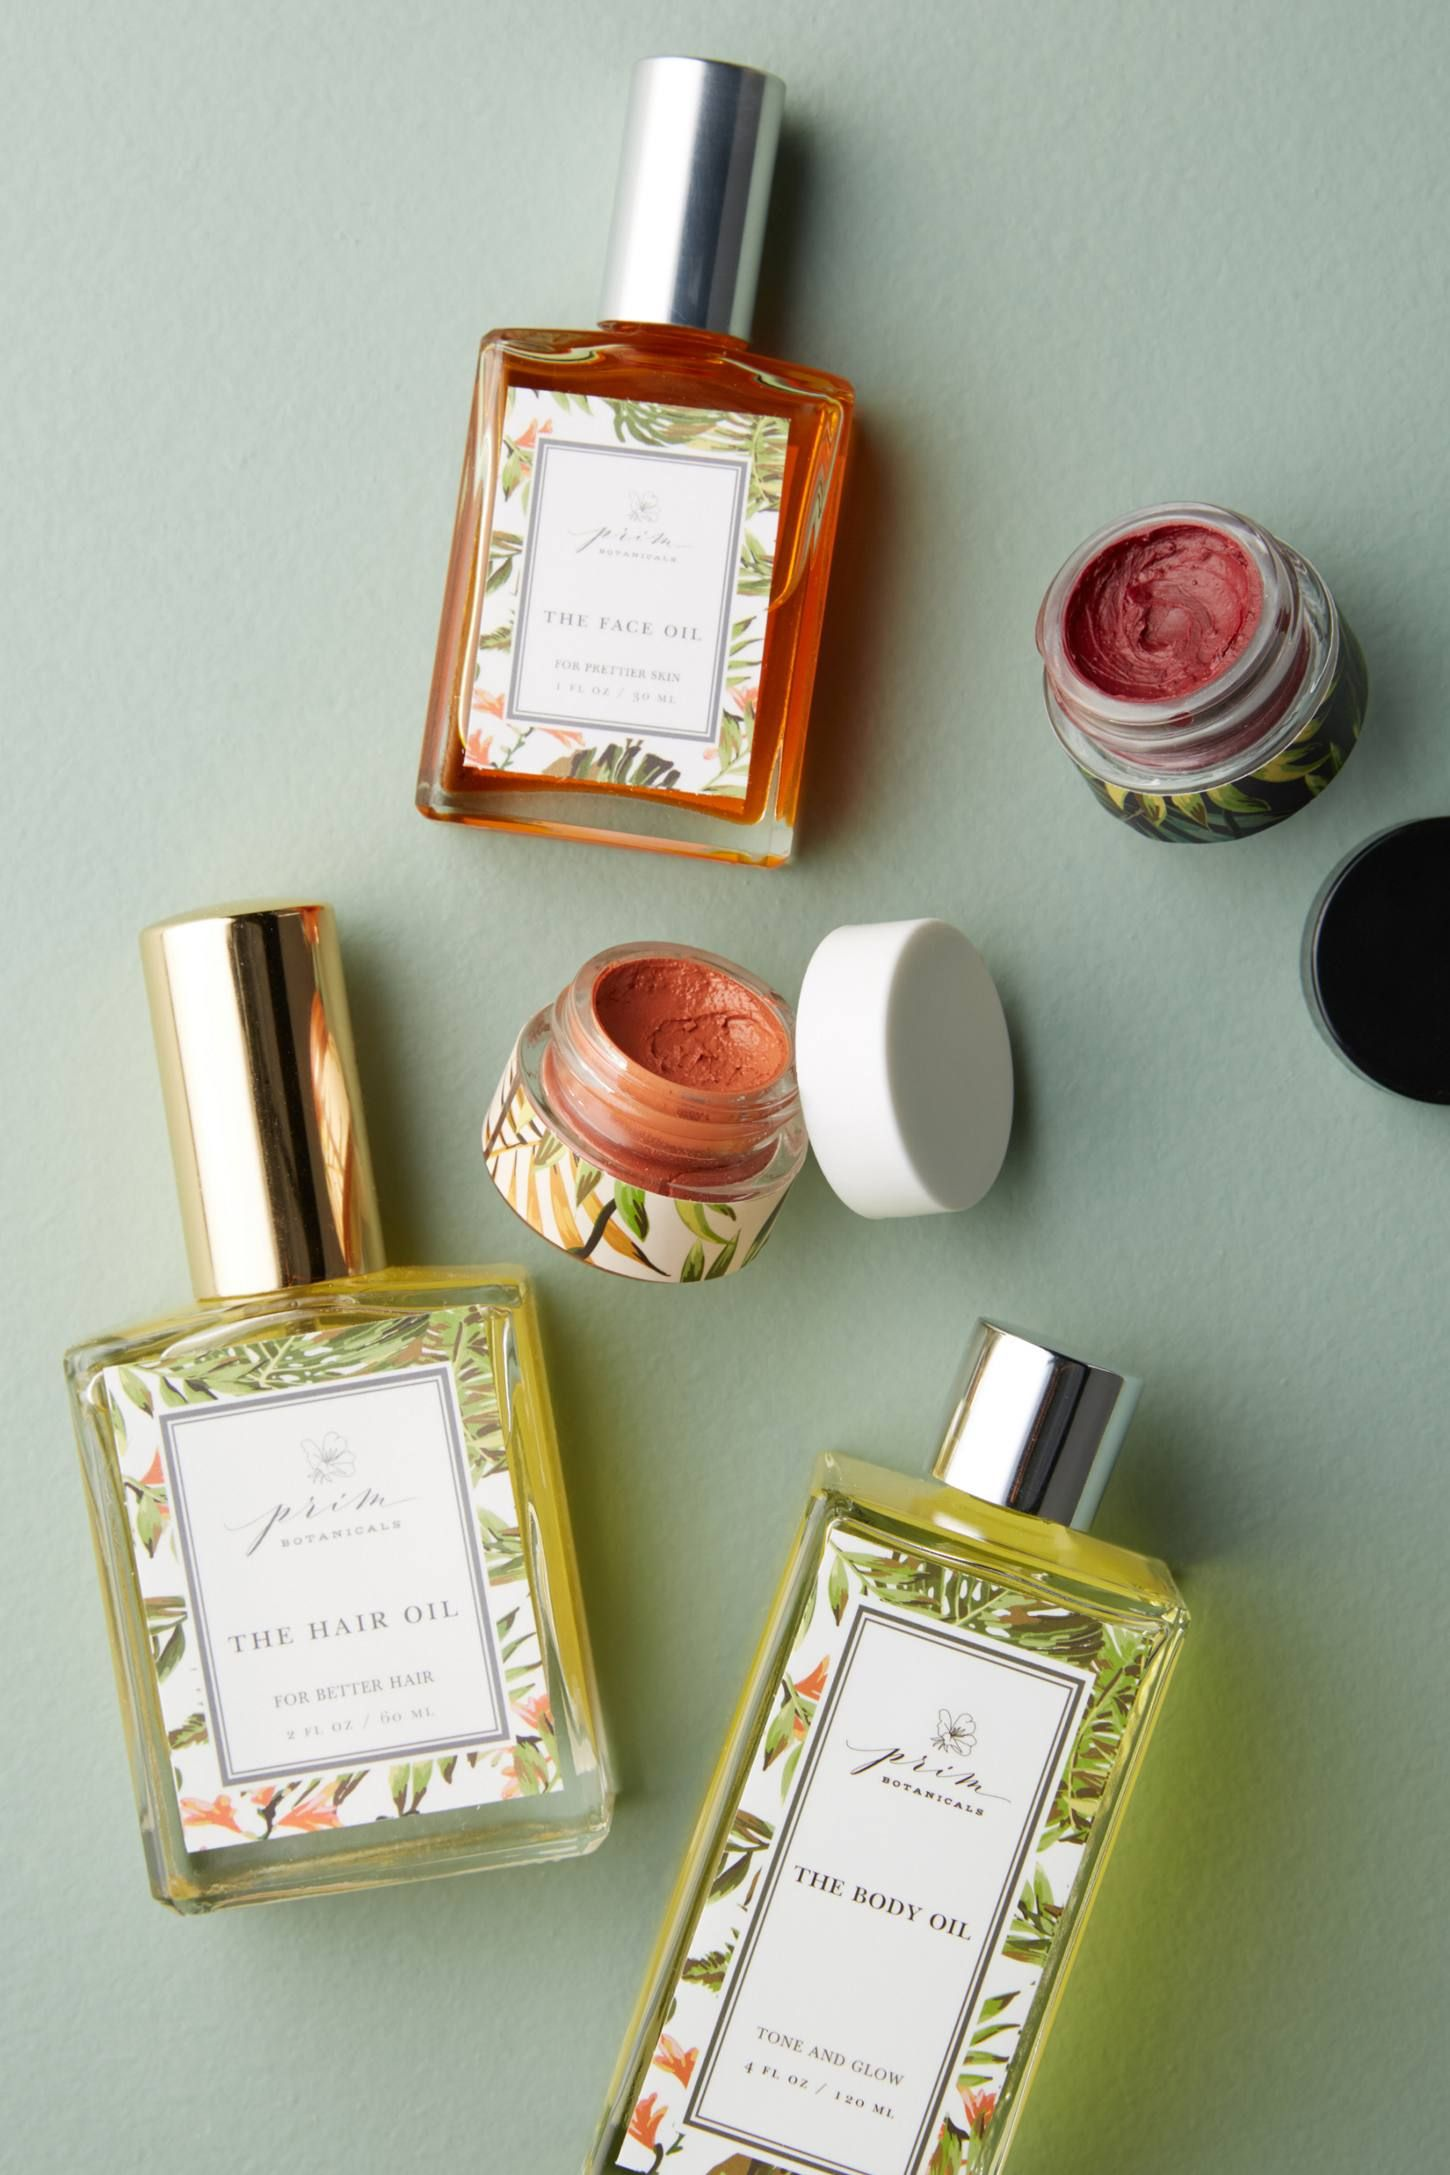 Prim Botanicals The Face Oil Face oil, Beauty products